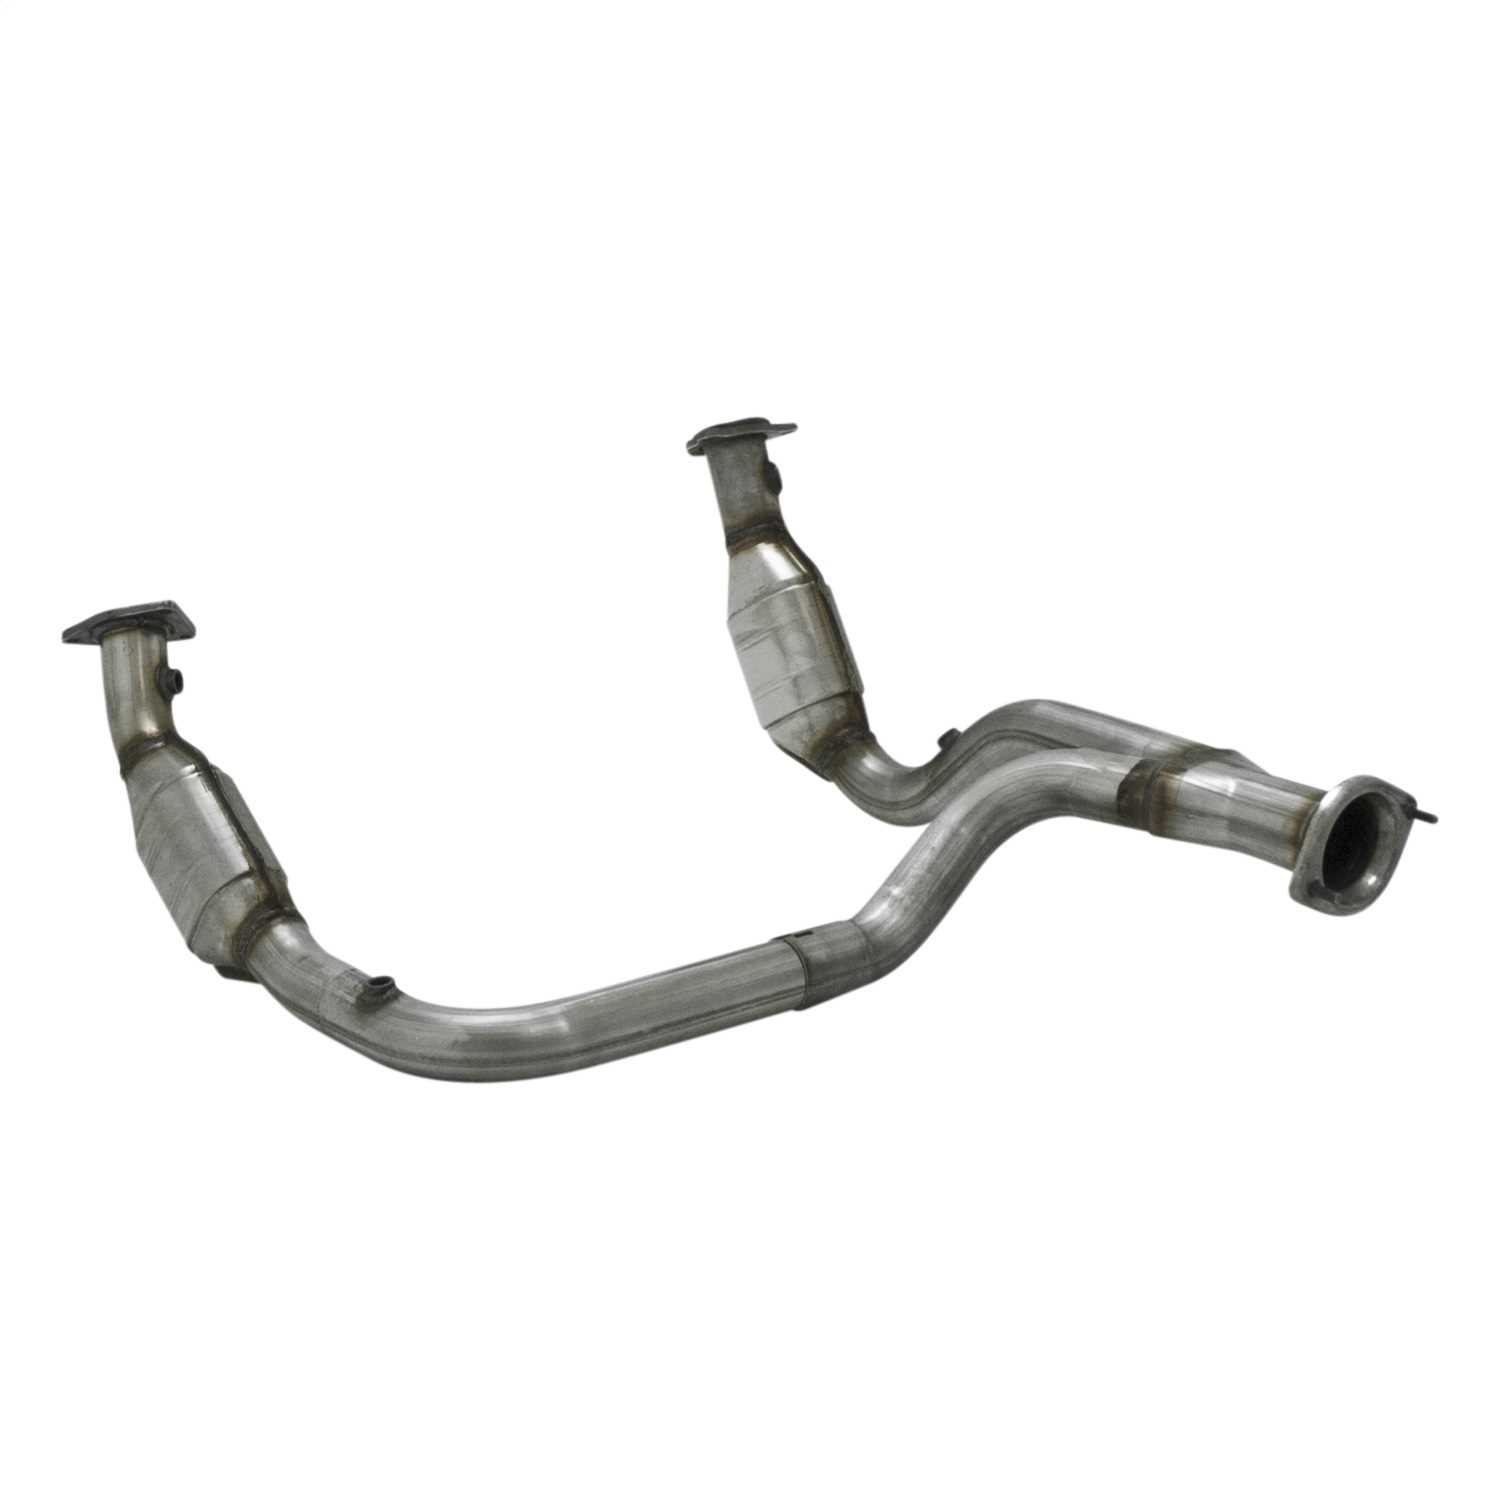 2010020 Flowmaster 49 State Catalytic Converters Direct Fit Catalytic Converter